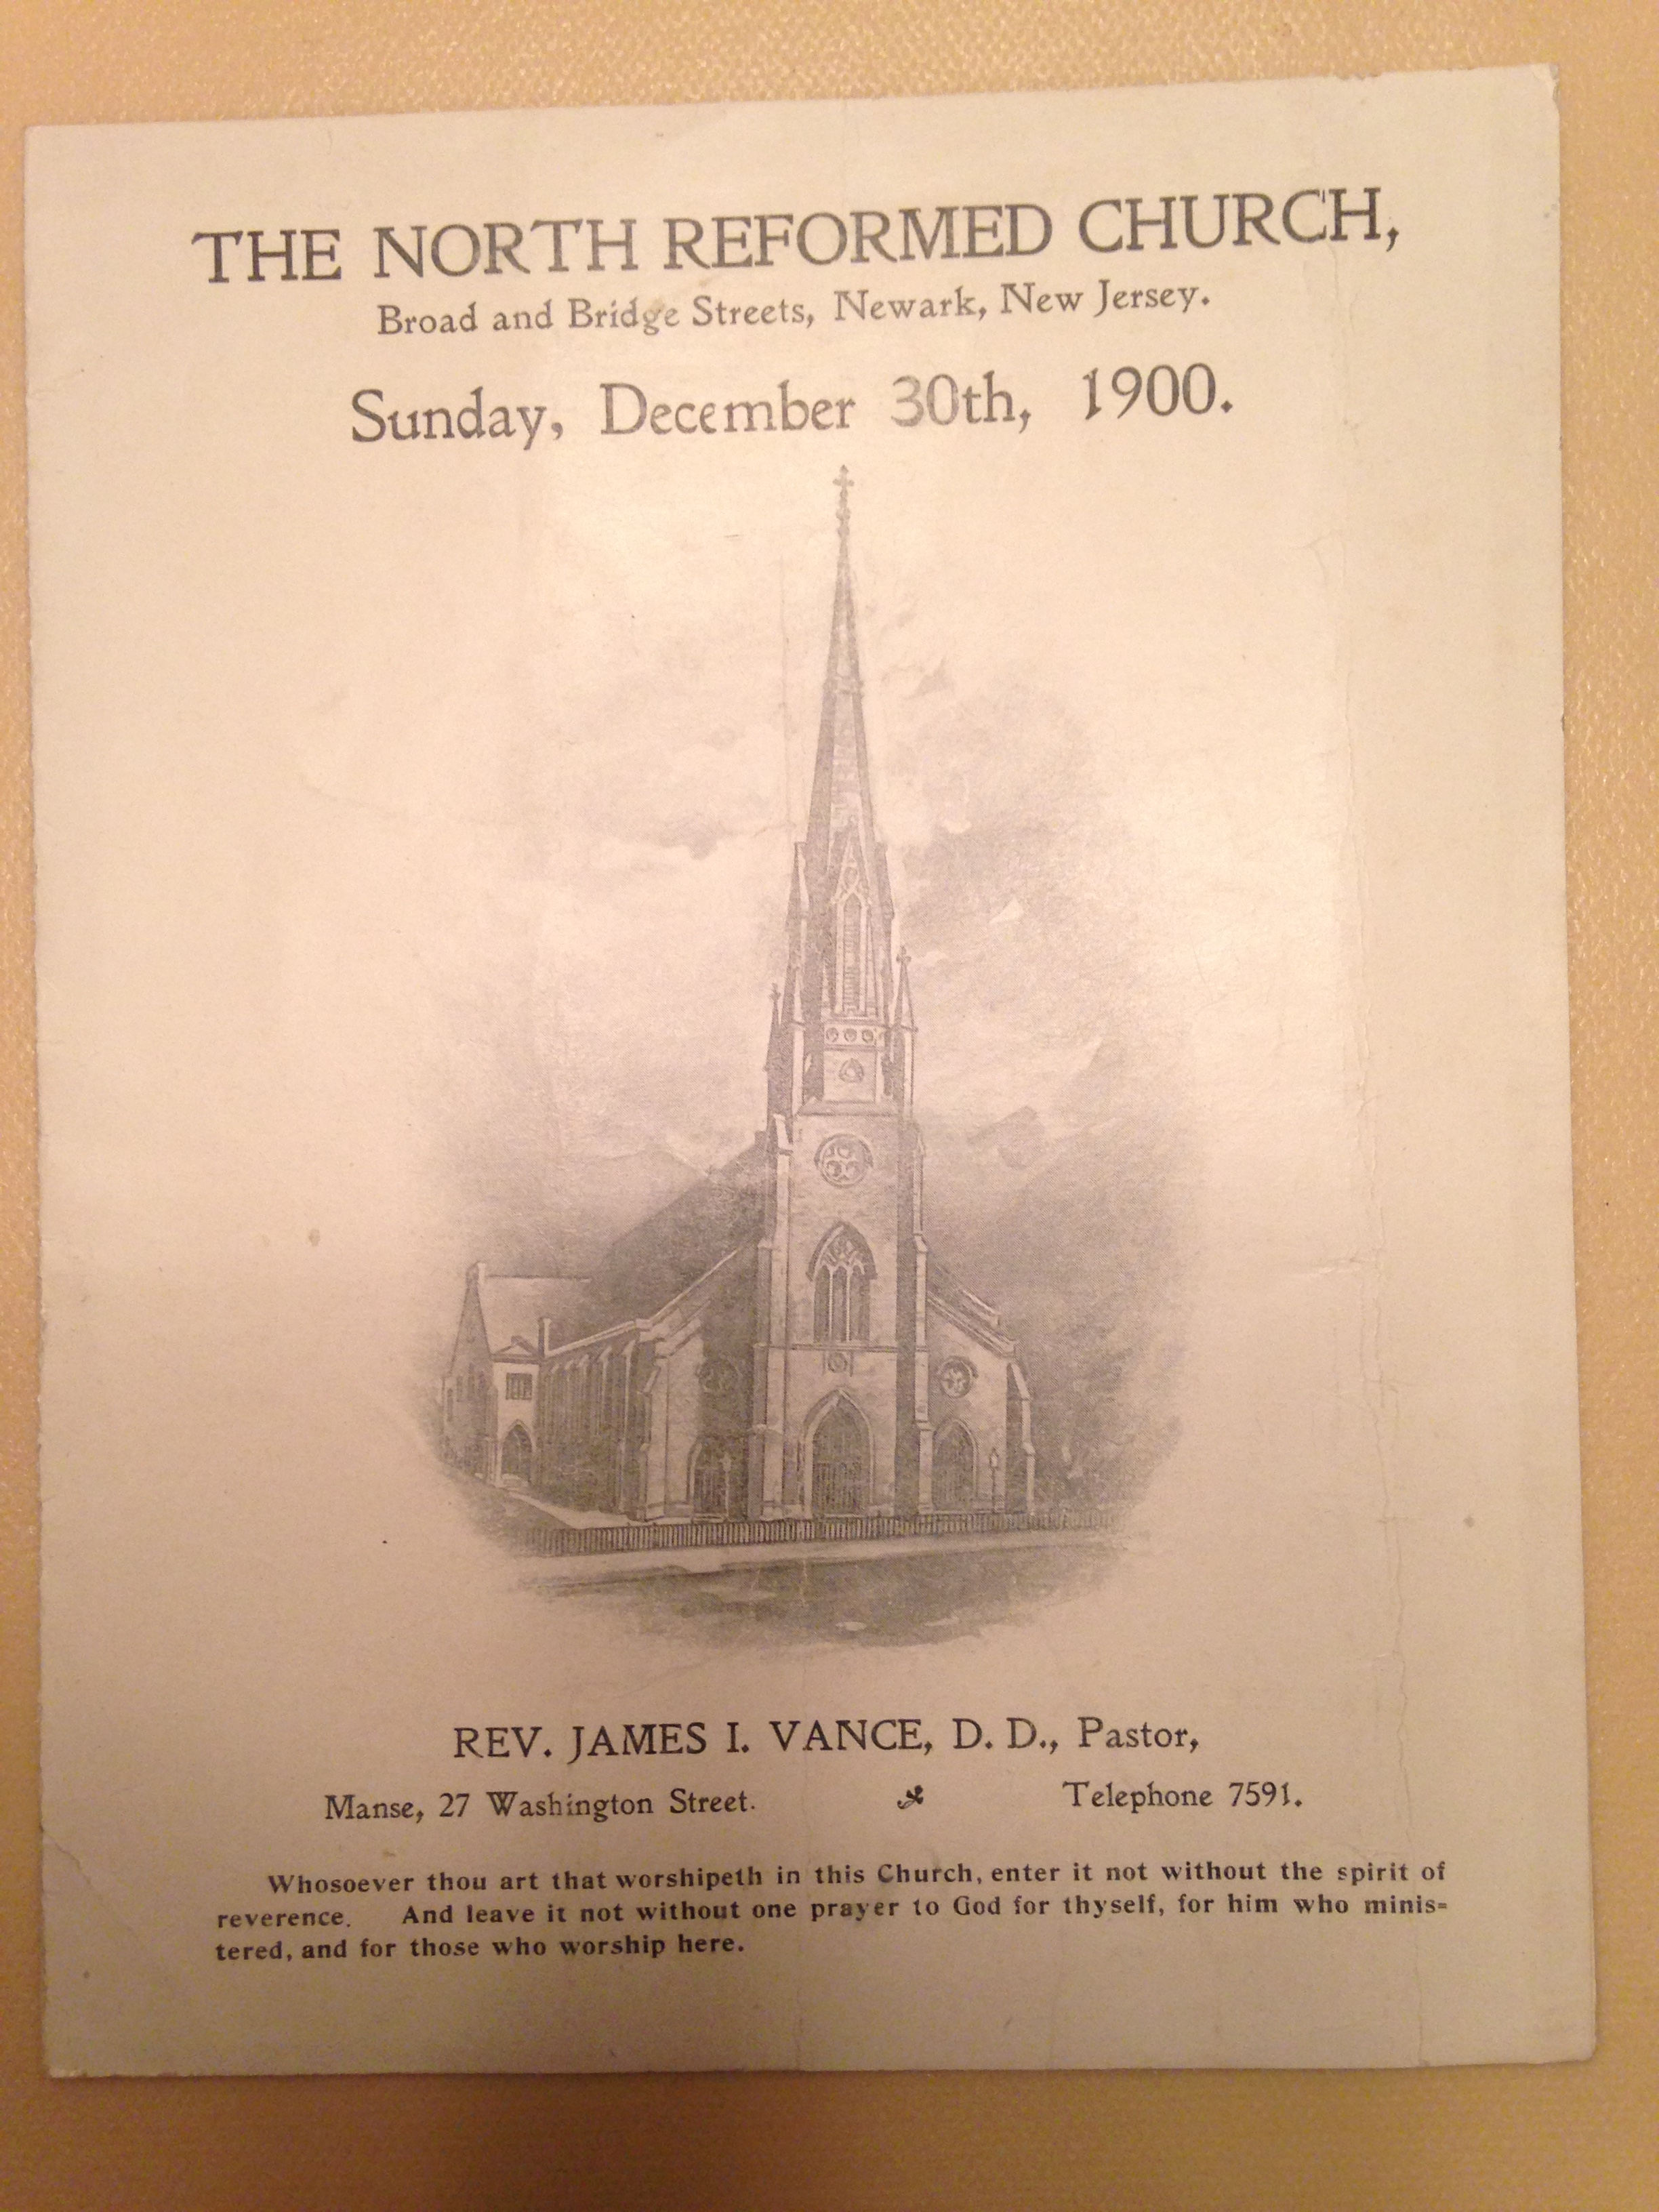 the north reformed church program for the service on sunday